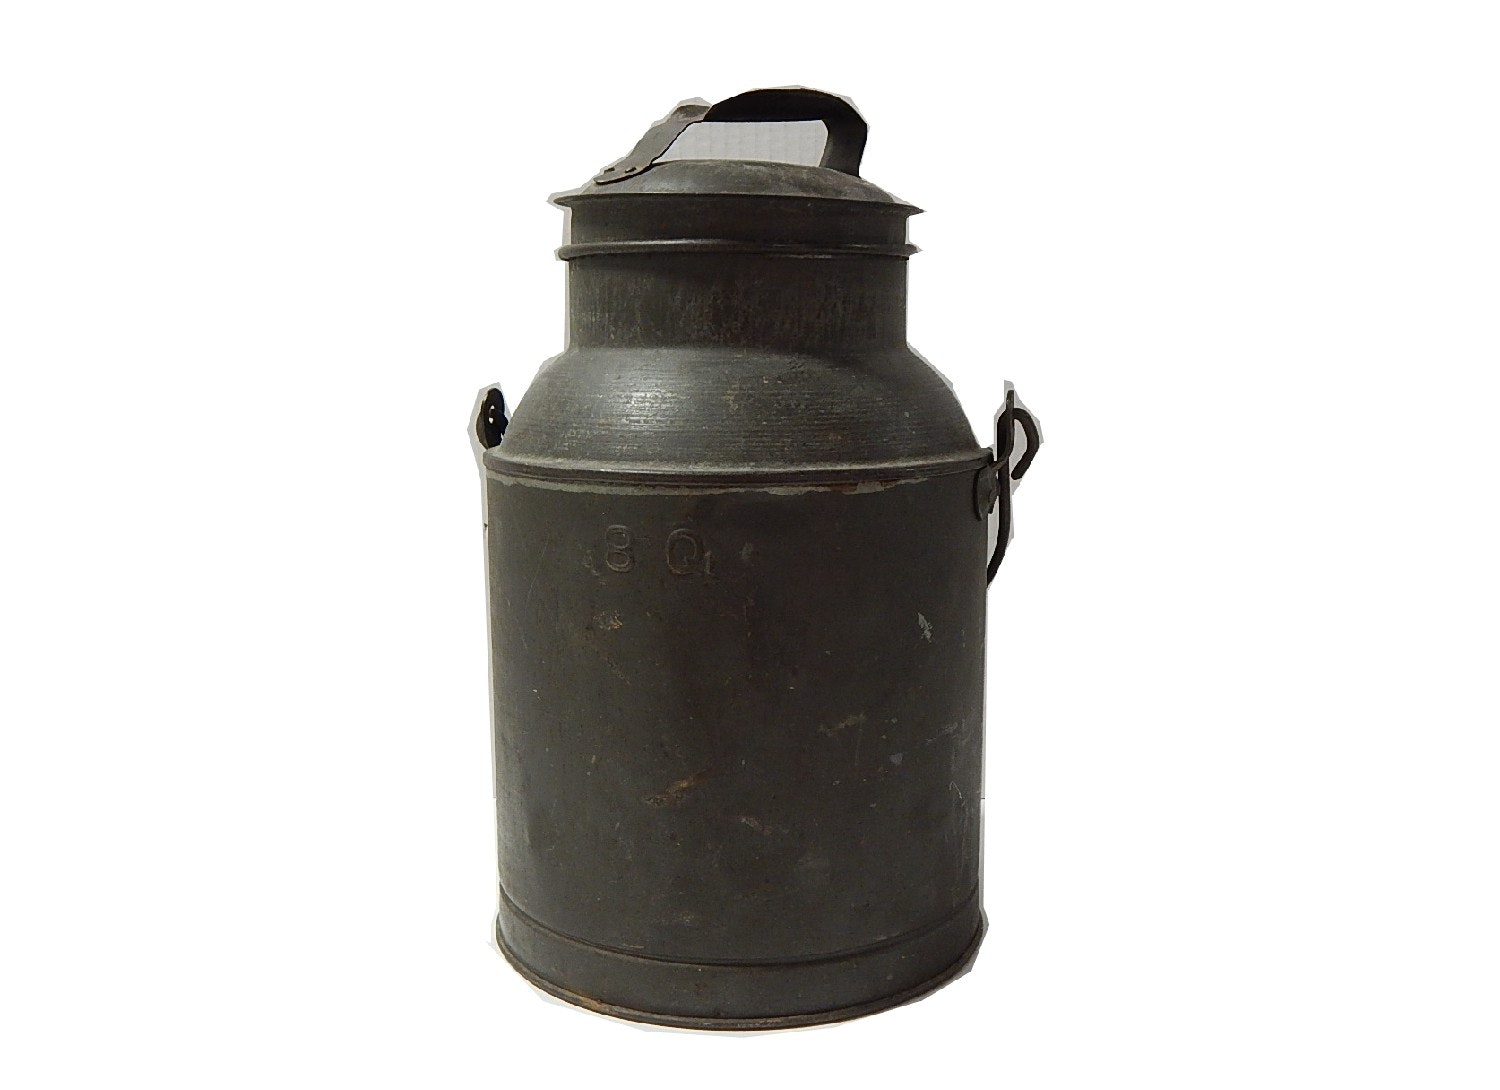 Vintage 8 Qt Metal Milk Can with Bale Handle in Army-Green